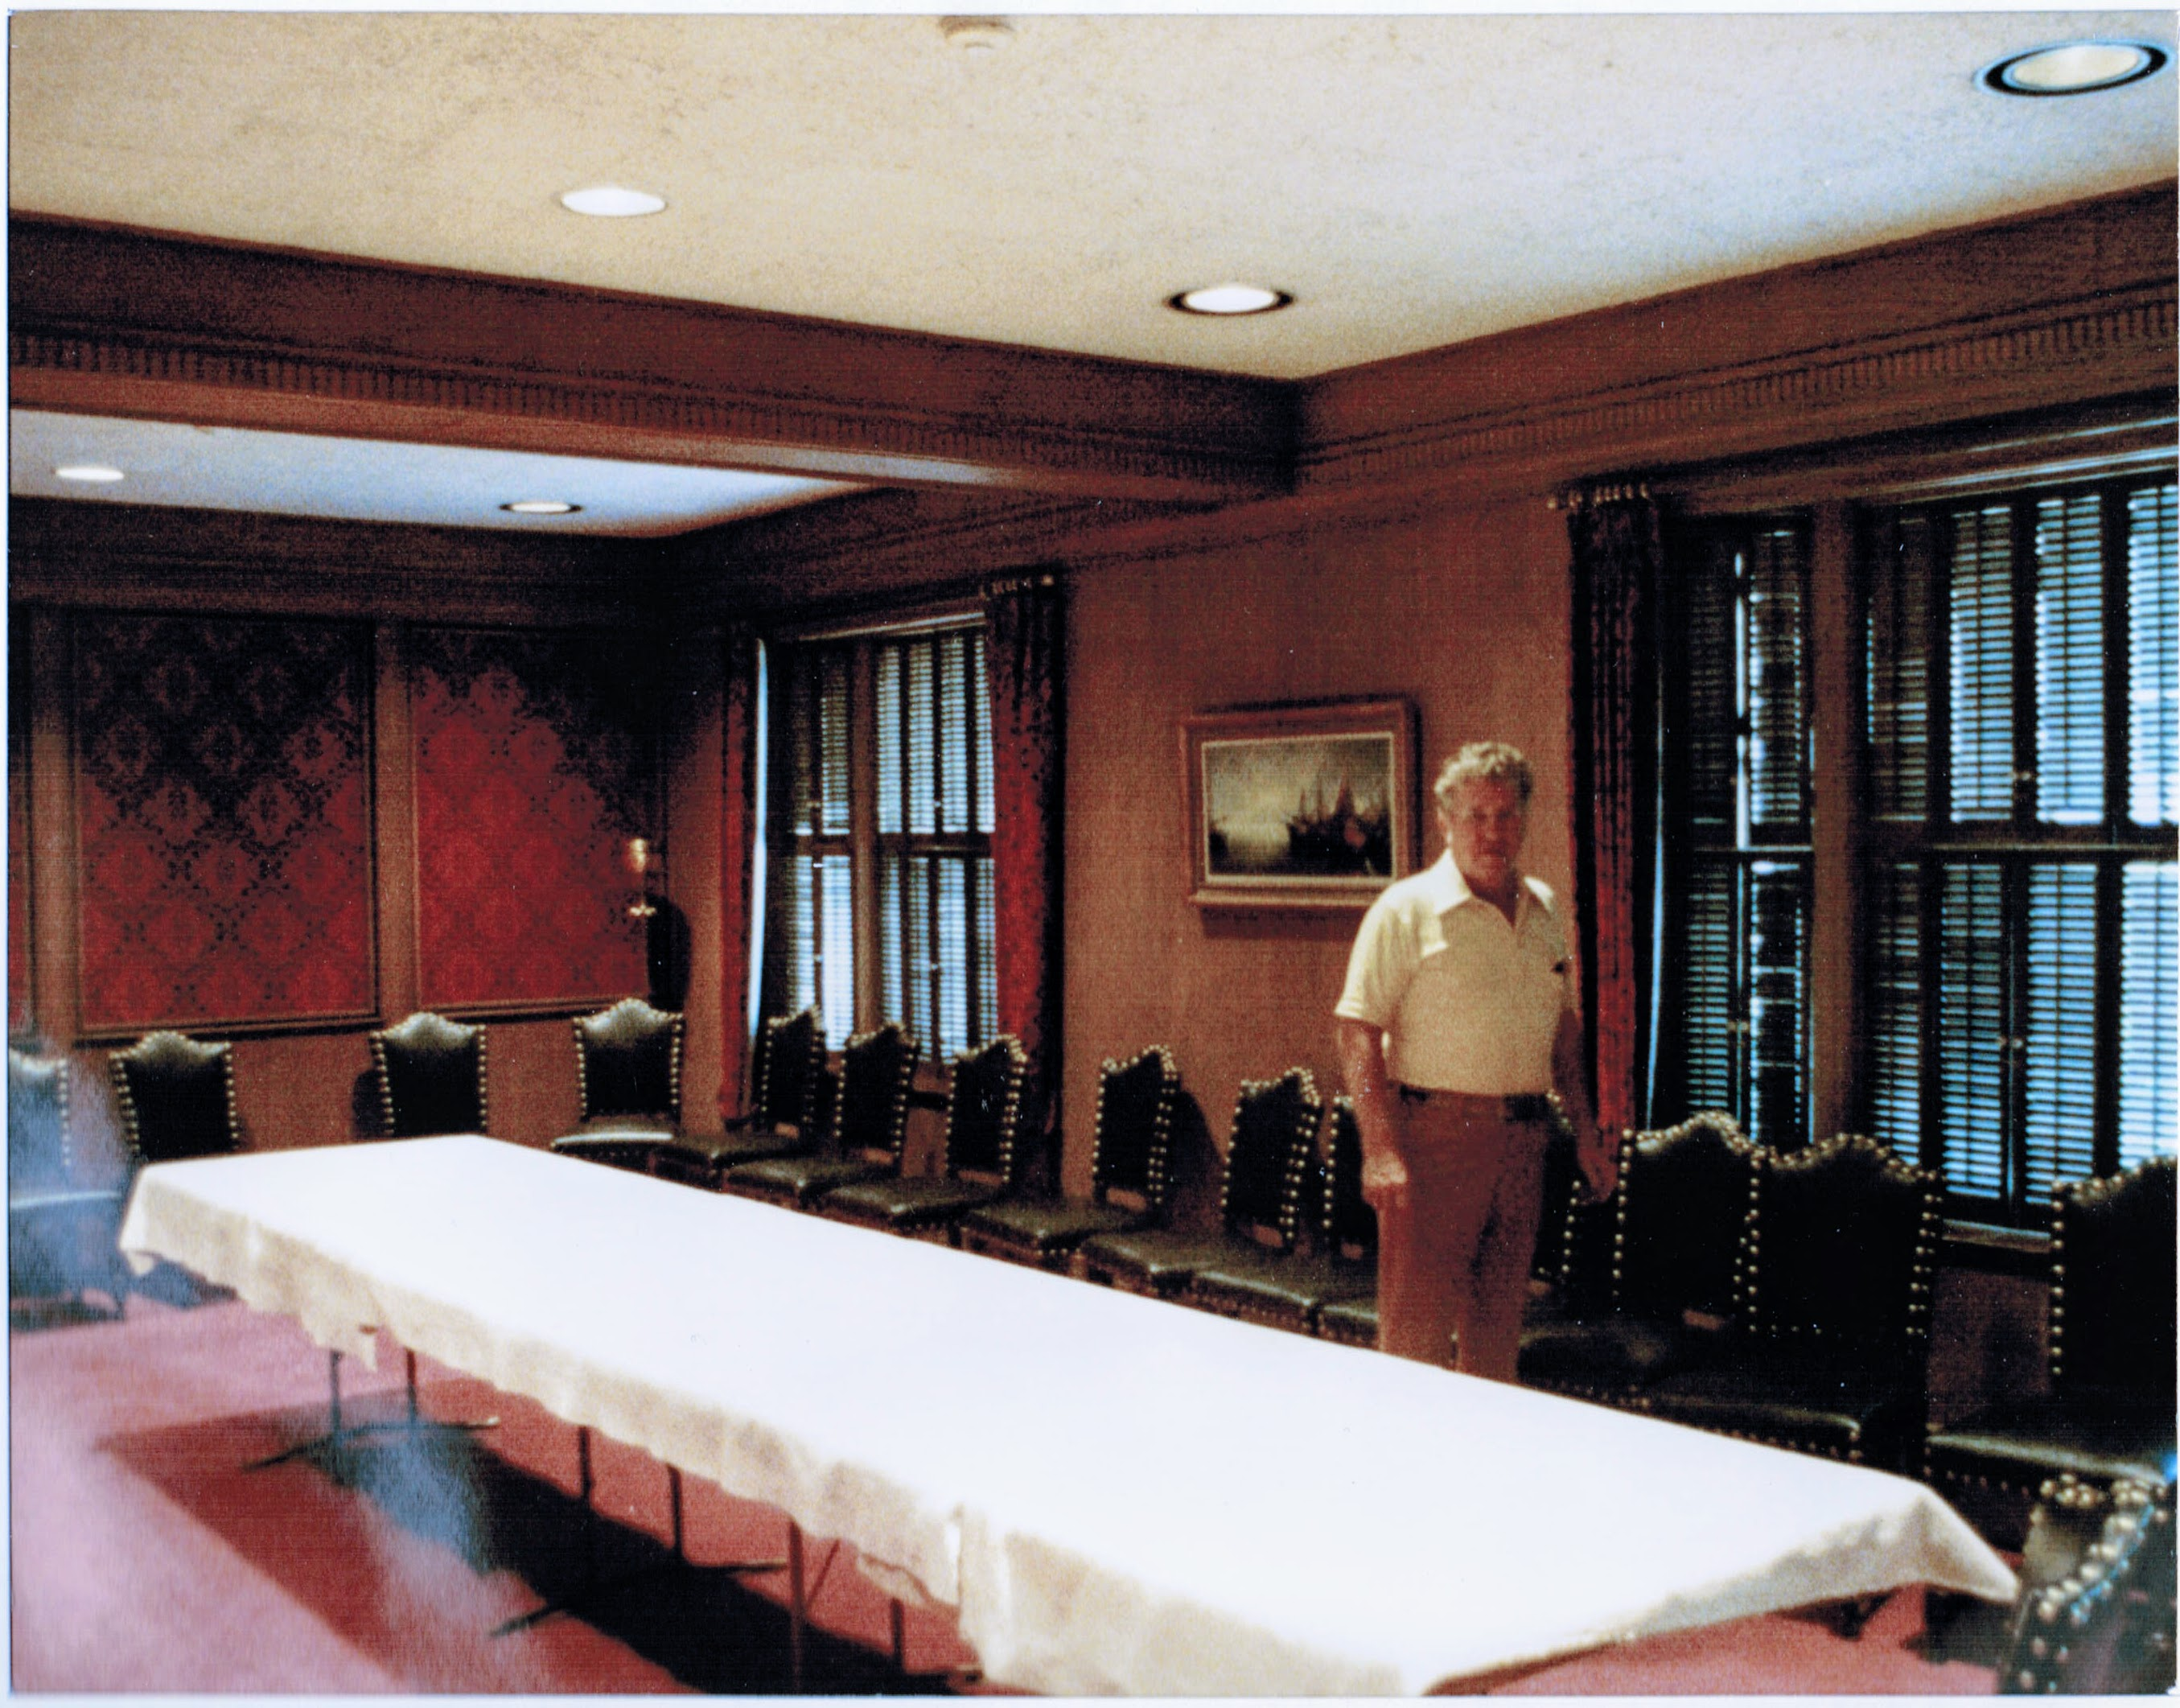 Paul Stanfield in 1975 at the Alta Club